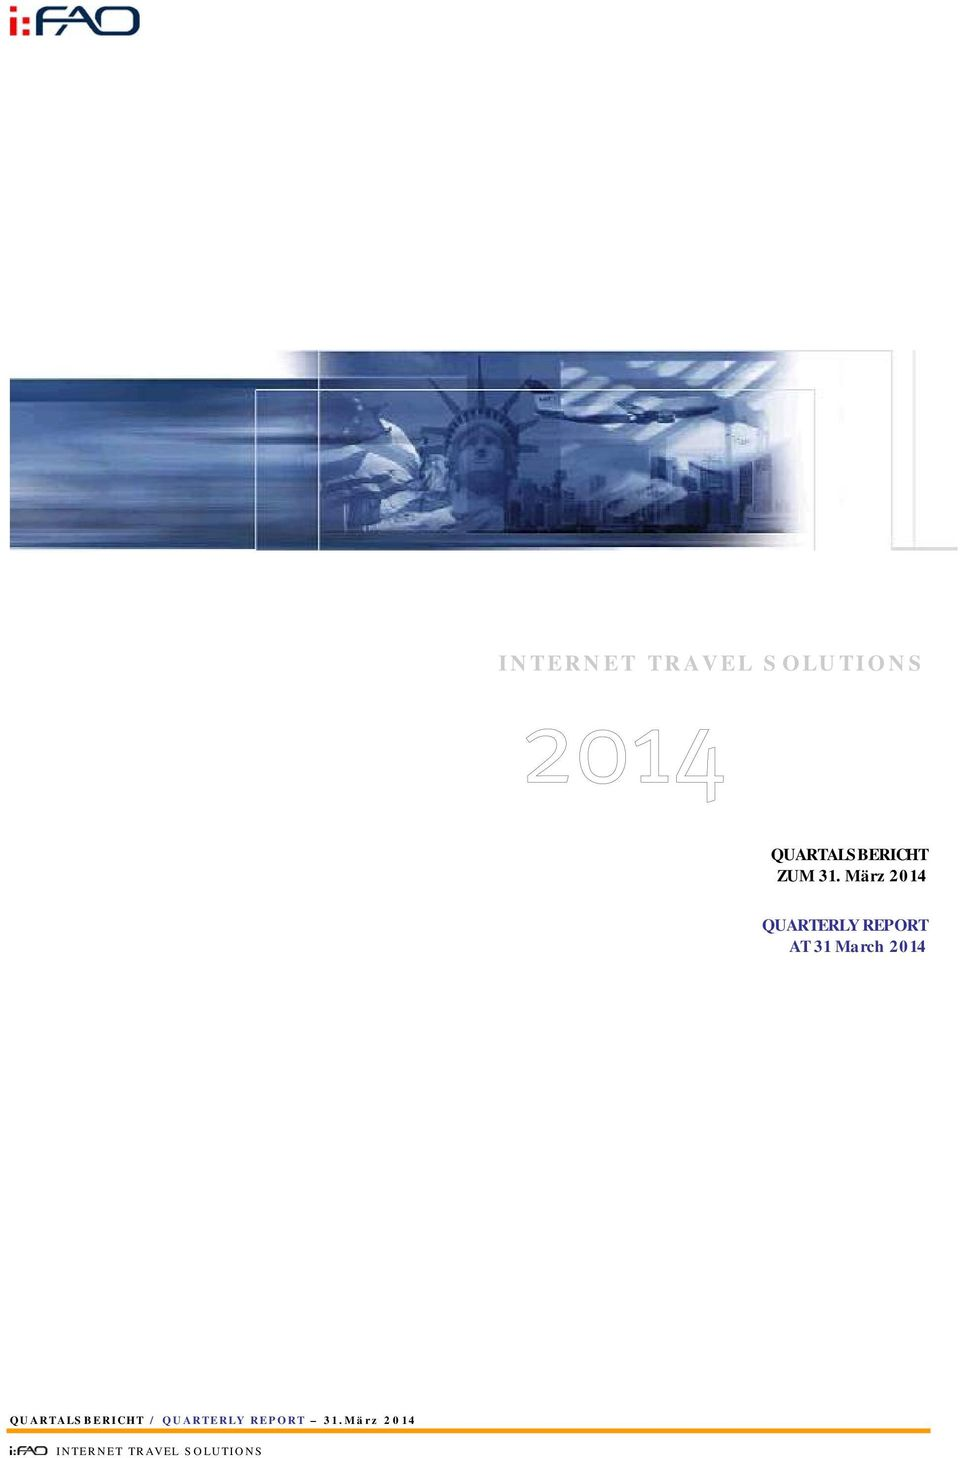 März 2014 QUARTERLY REPORT AT